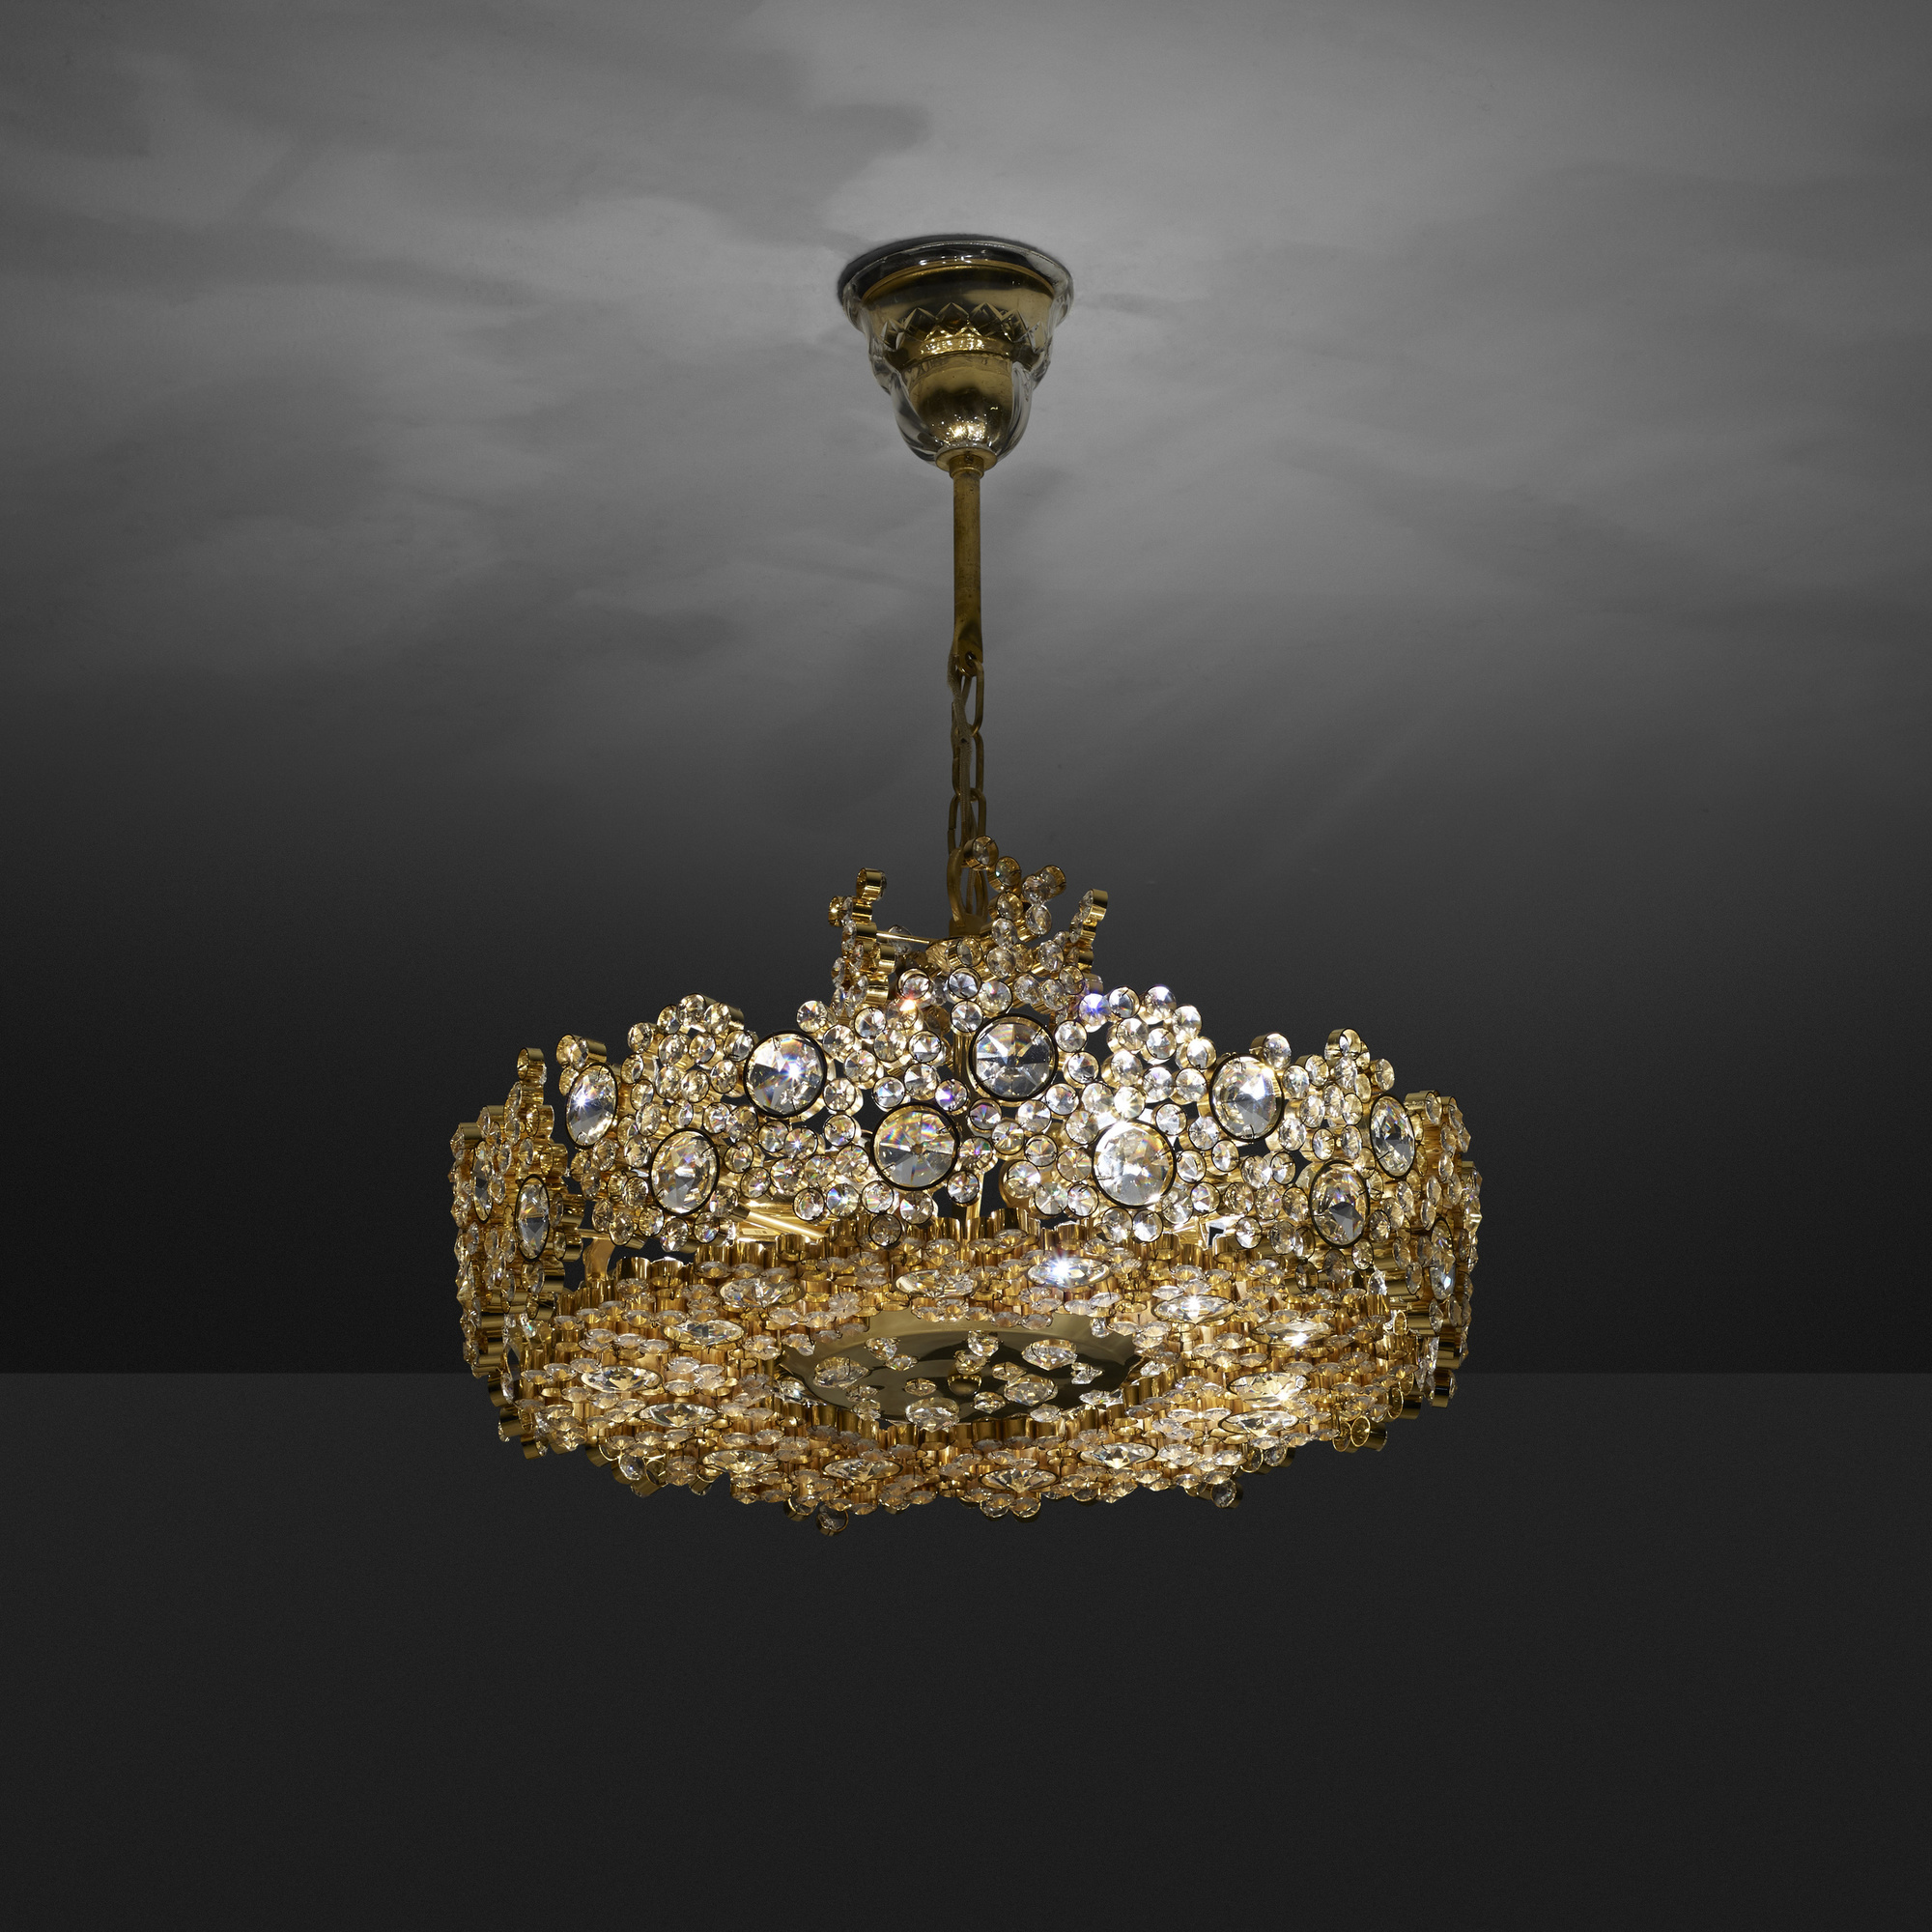 cut crystals in and cascades crystal art warm light fine wide inch item shown cfm silver chandelier hand leaf finish lamps